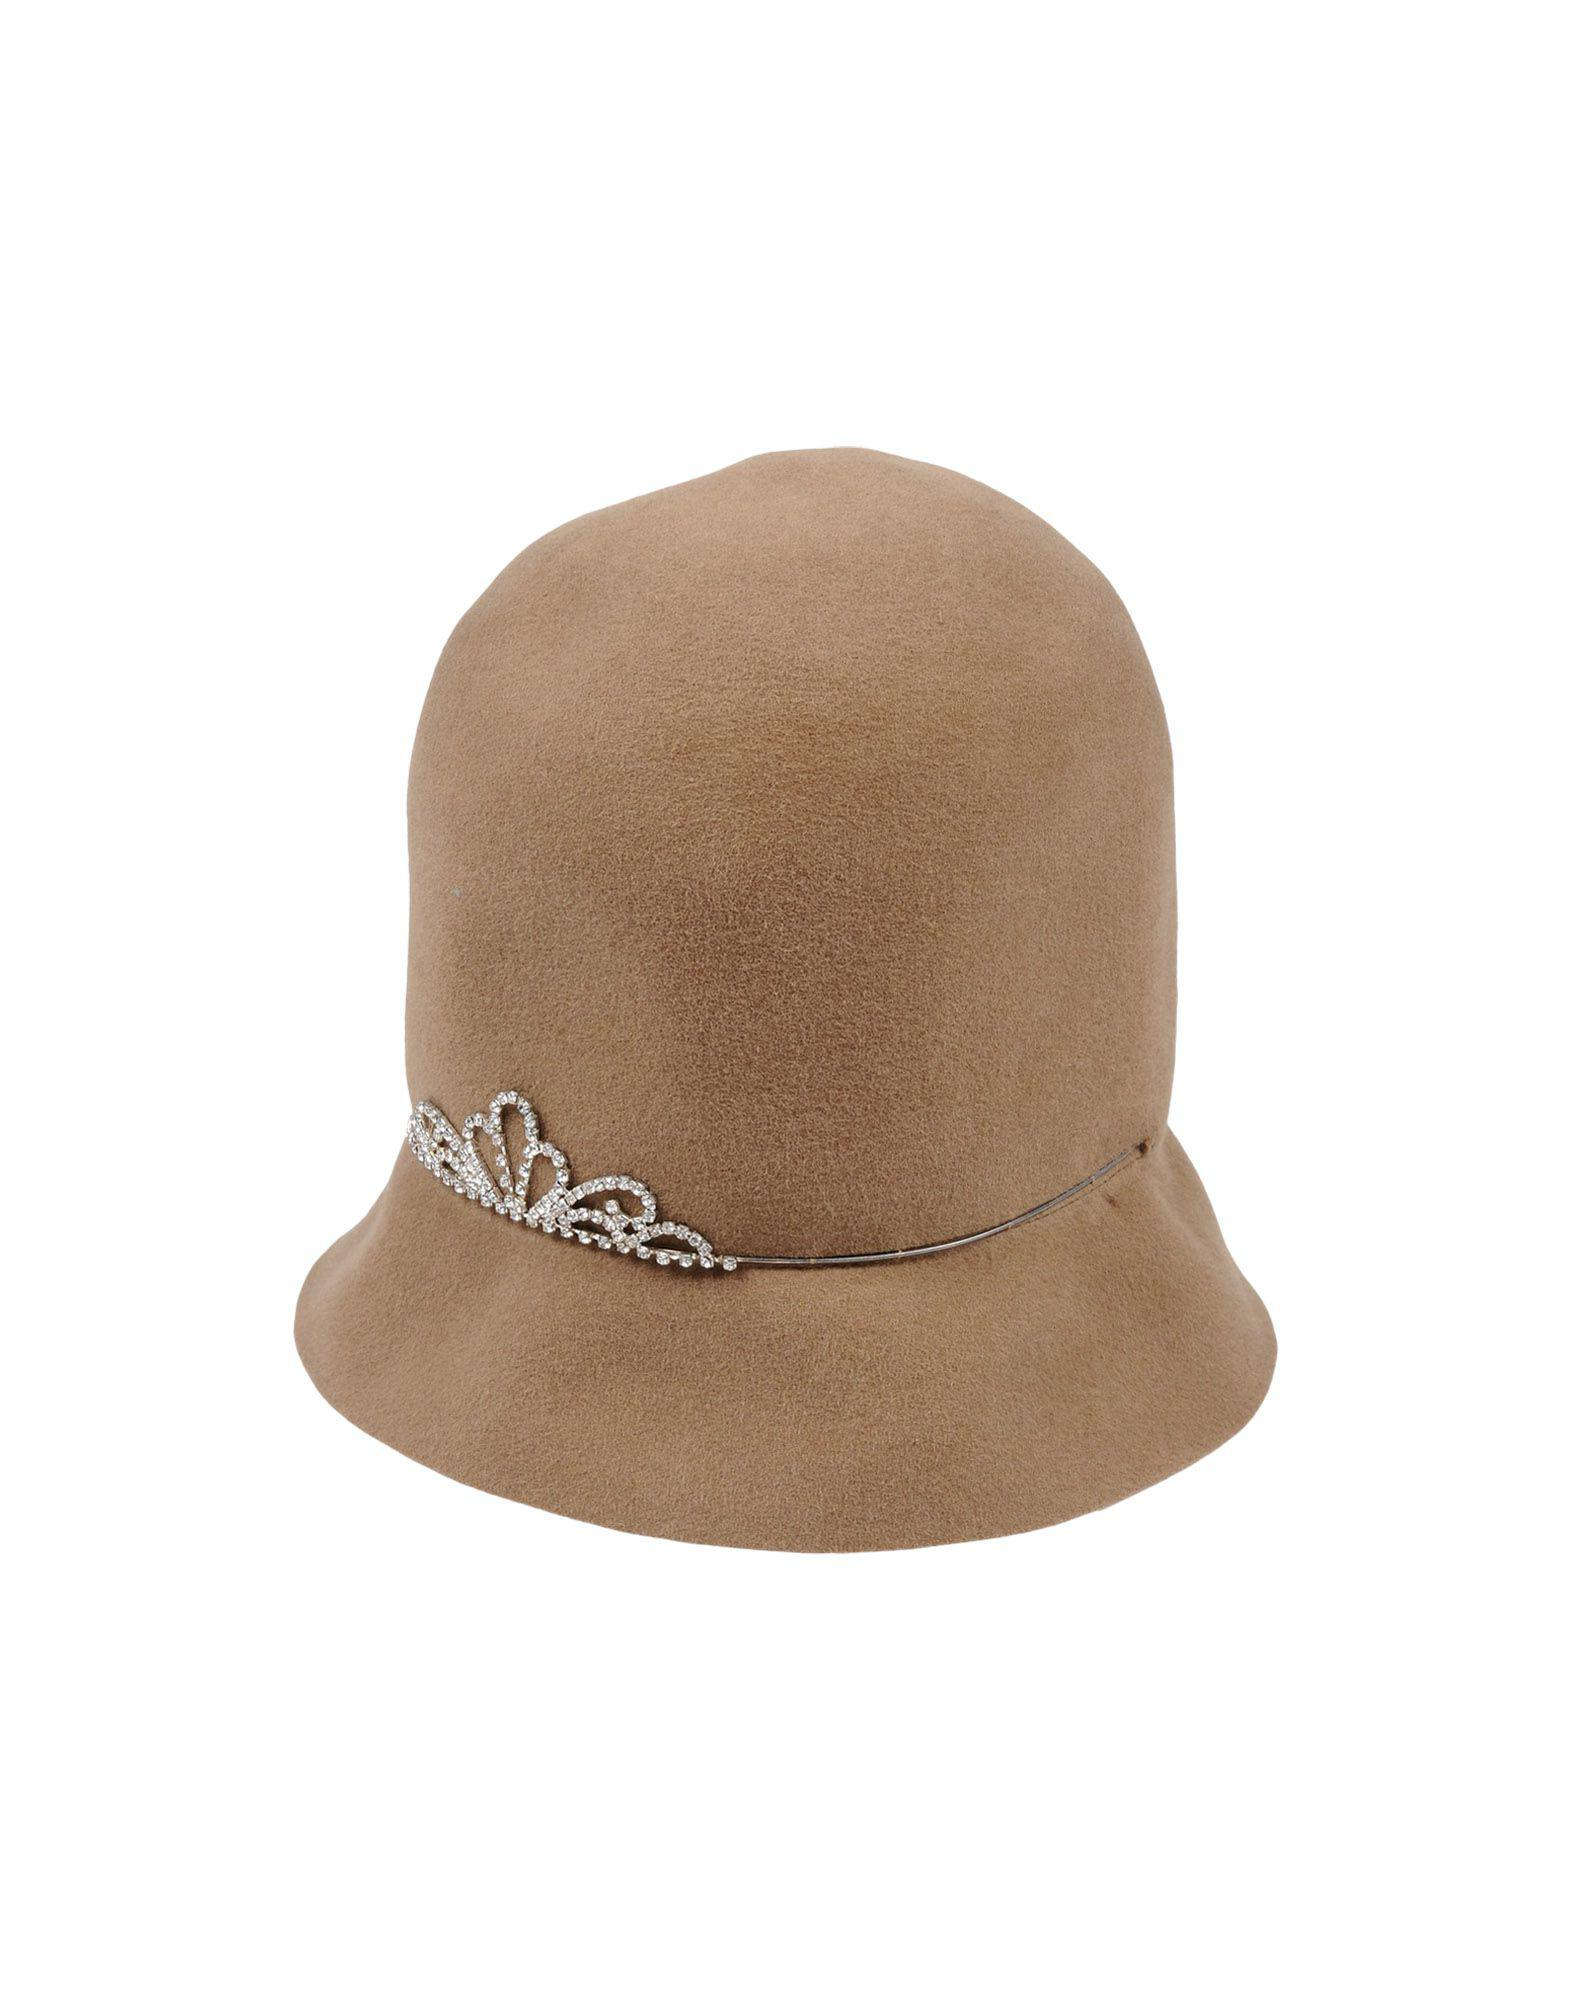 Lyst - Patrizia Fabri Hat in Natural 9e3b6f97c4ab